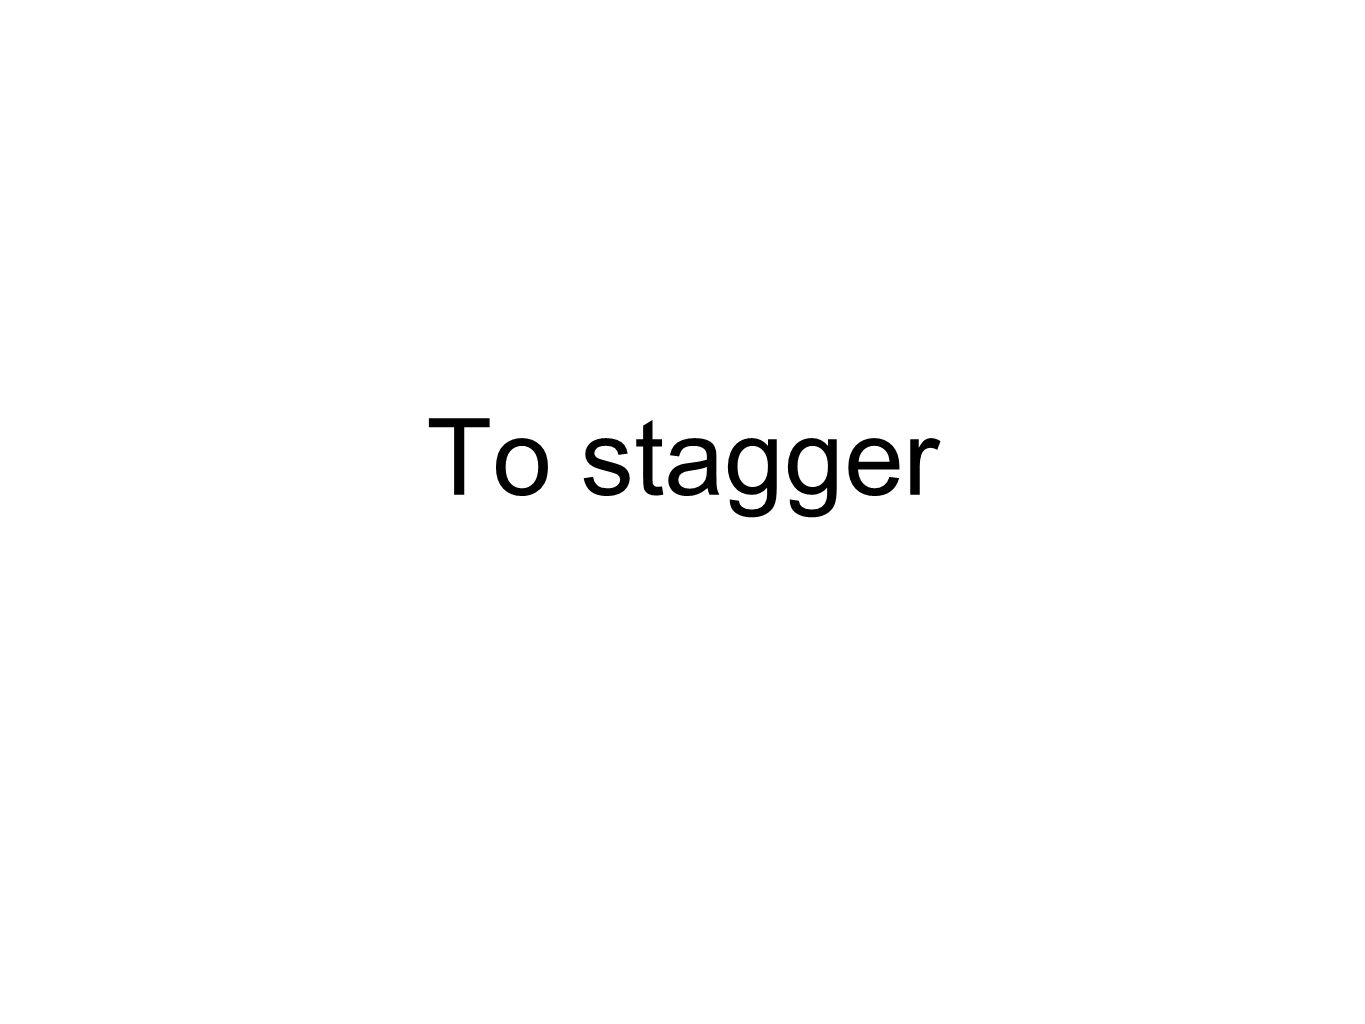 To stagger